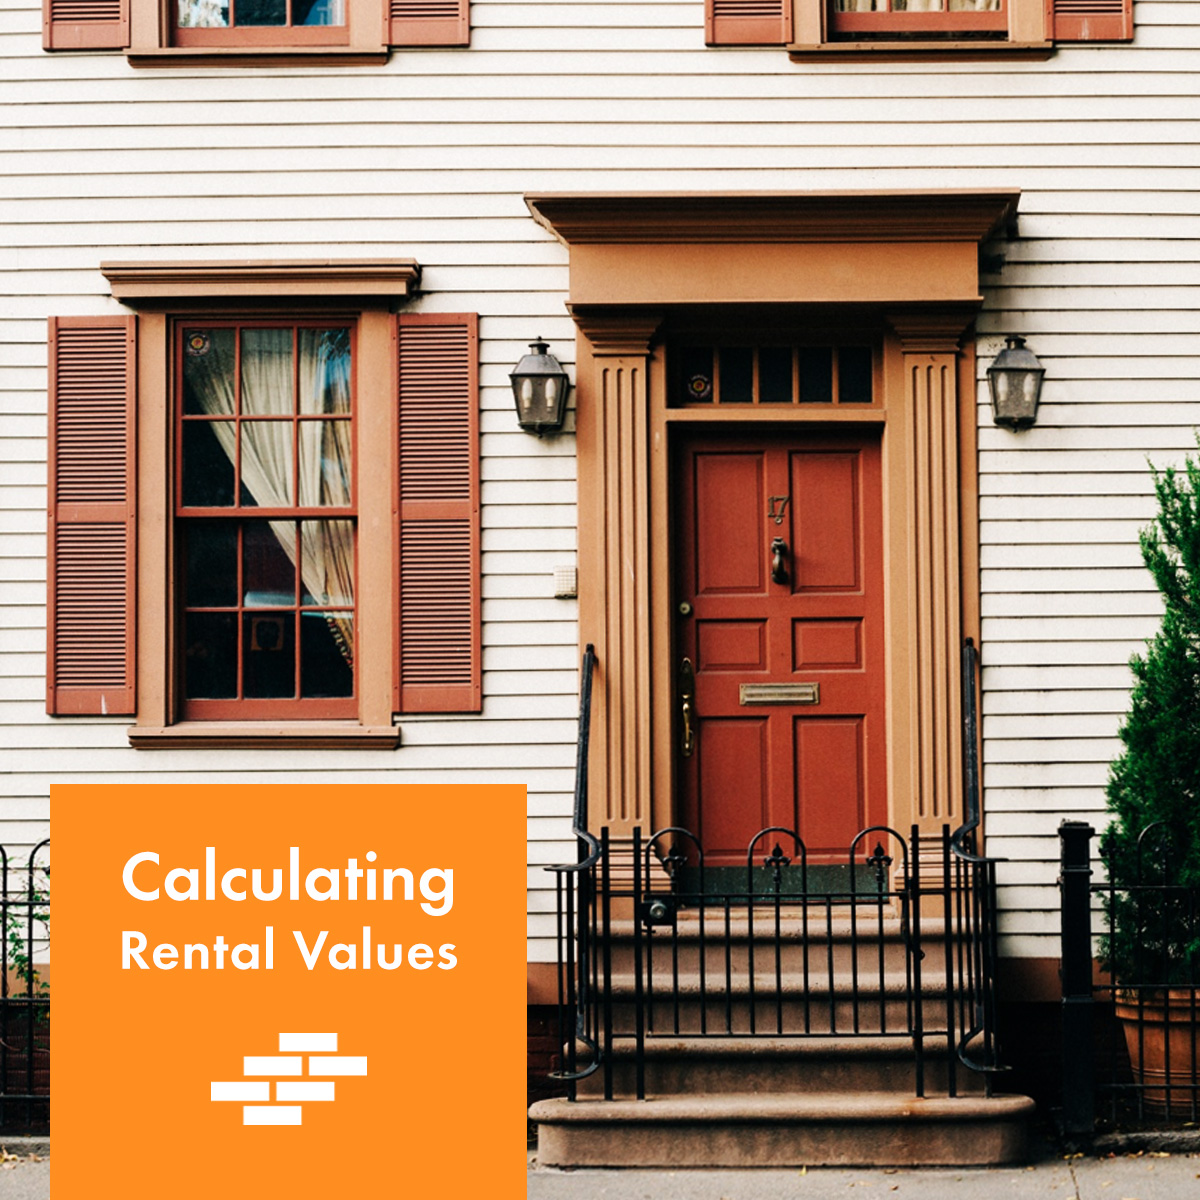 calculating rental values with Colony American Finance Image 2